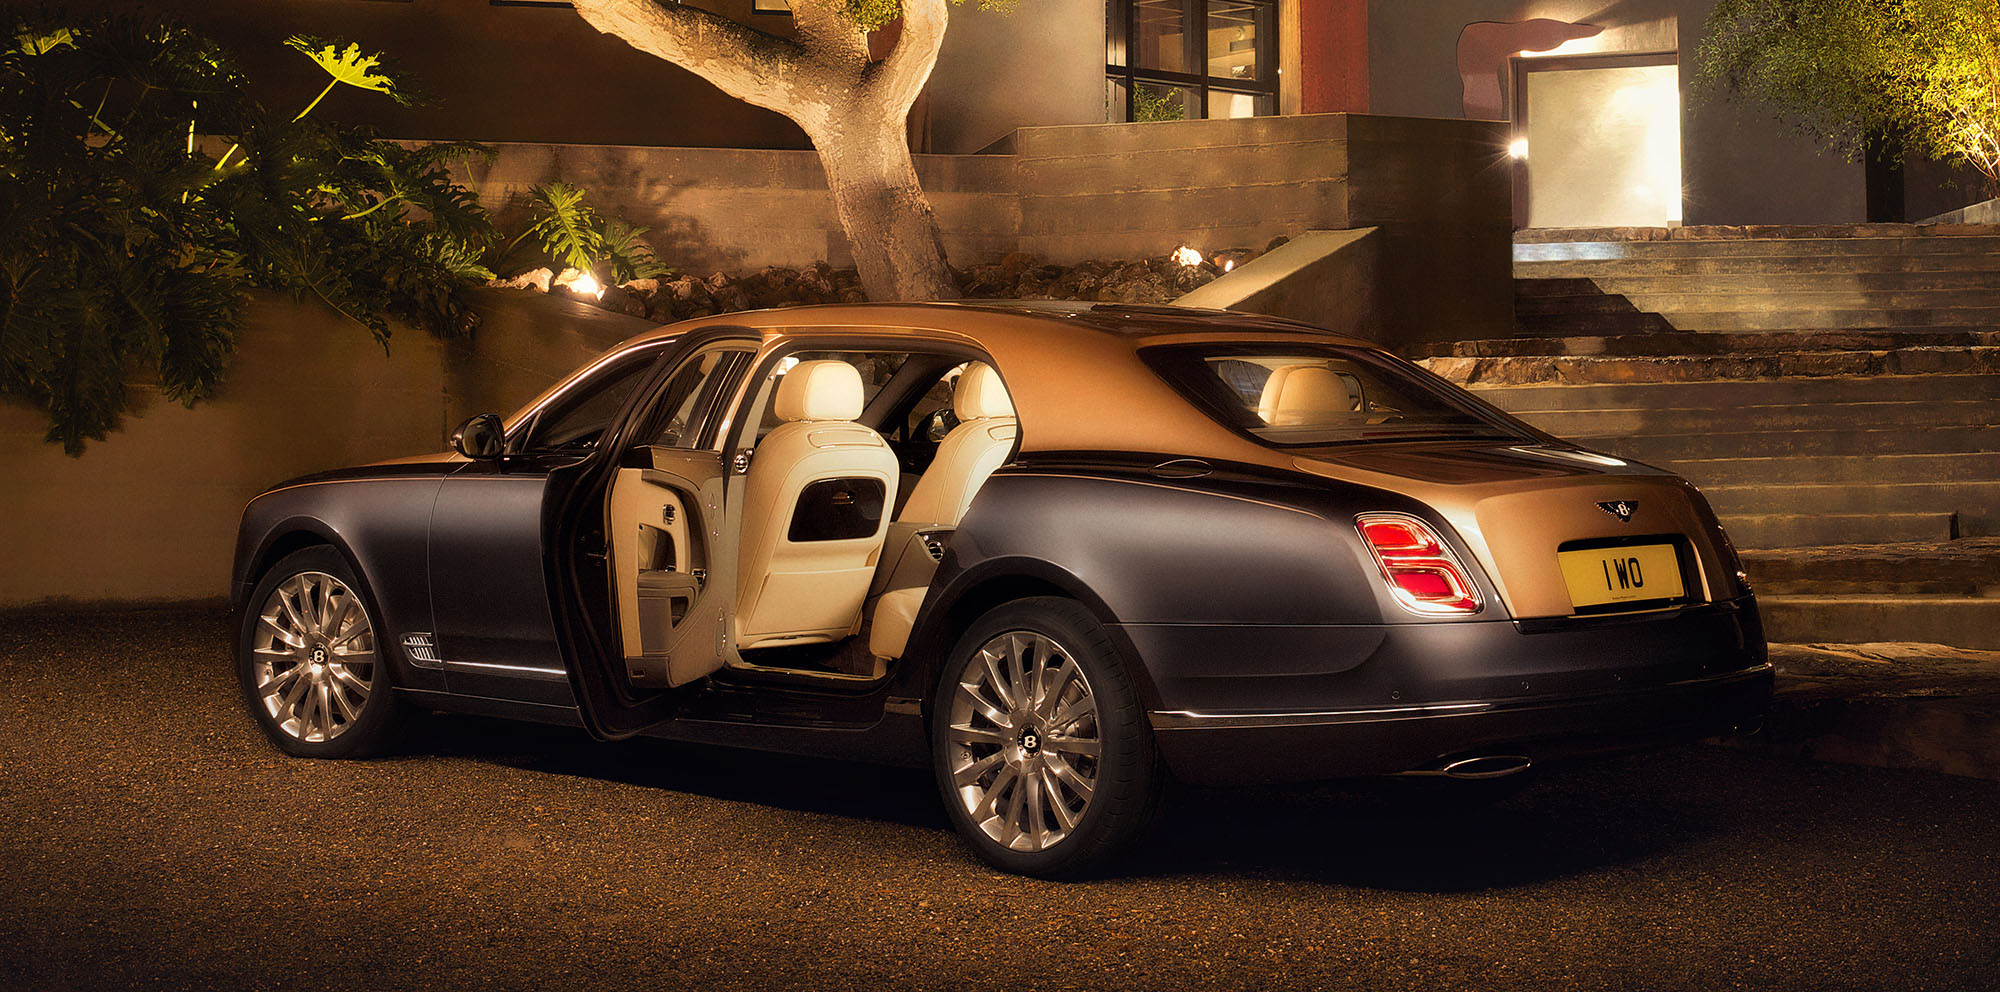 2017 Bentley Mulsanne Facelift And Extended Wheelbase